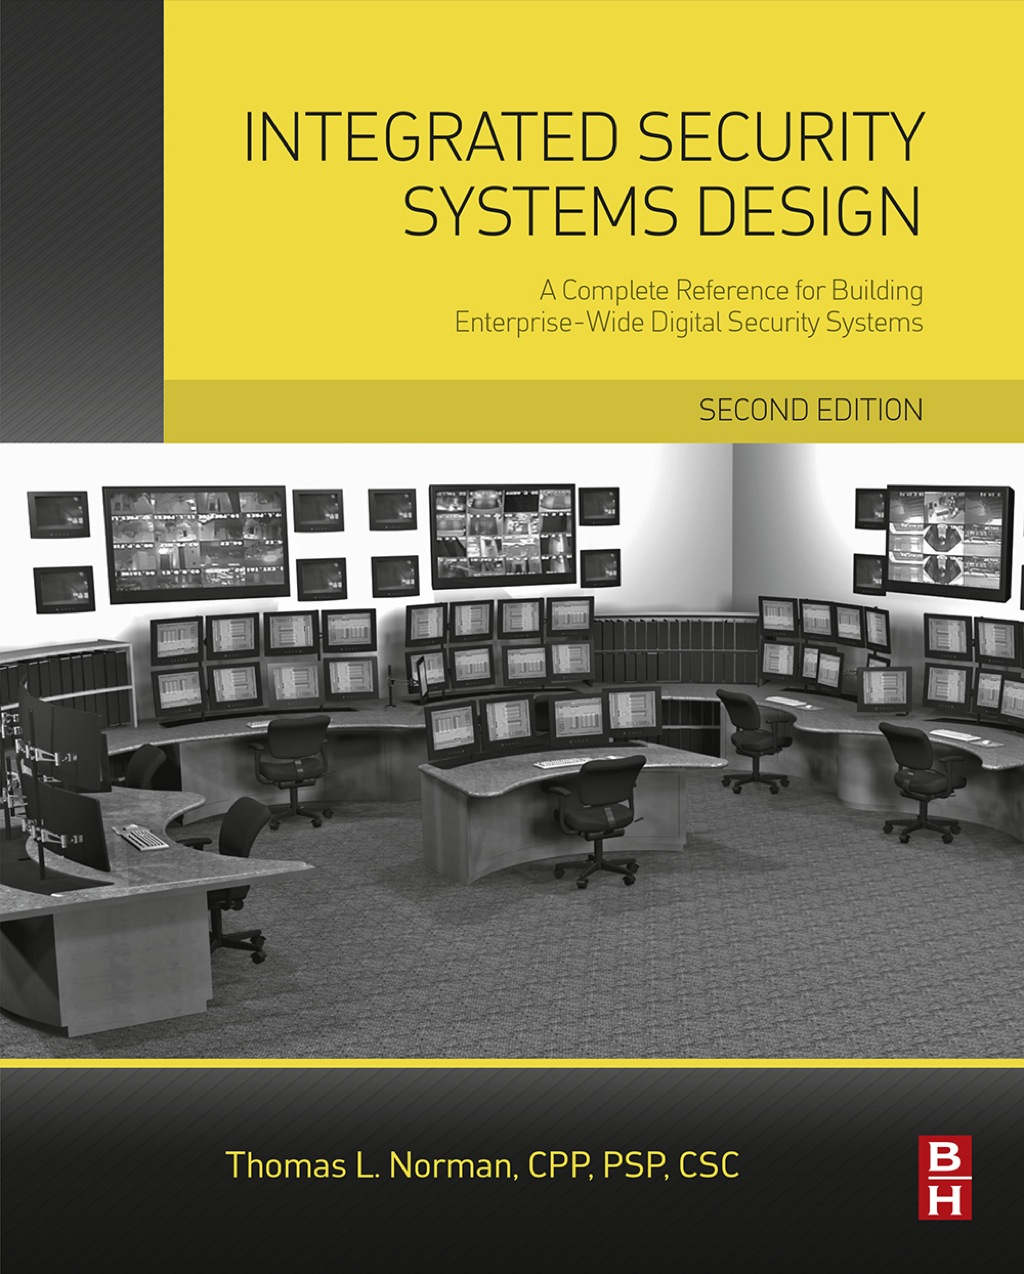 Integrated Security Systems Design: A Complete Reference for Building Enterprise-Wide Digital Security Systems (eBook Rental)